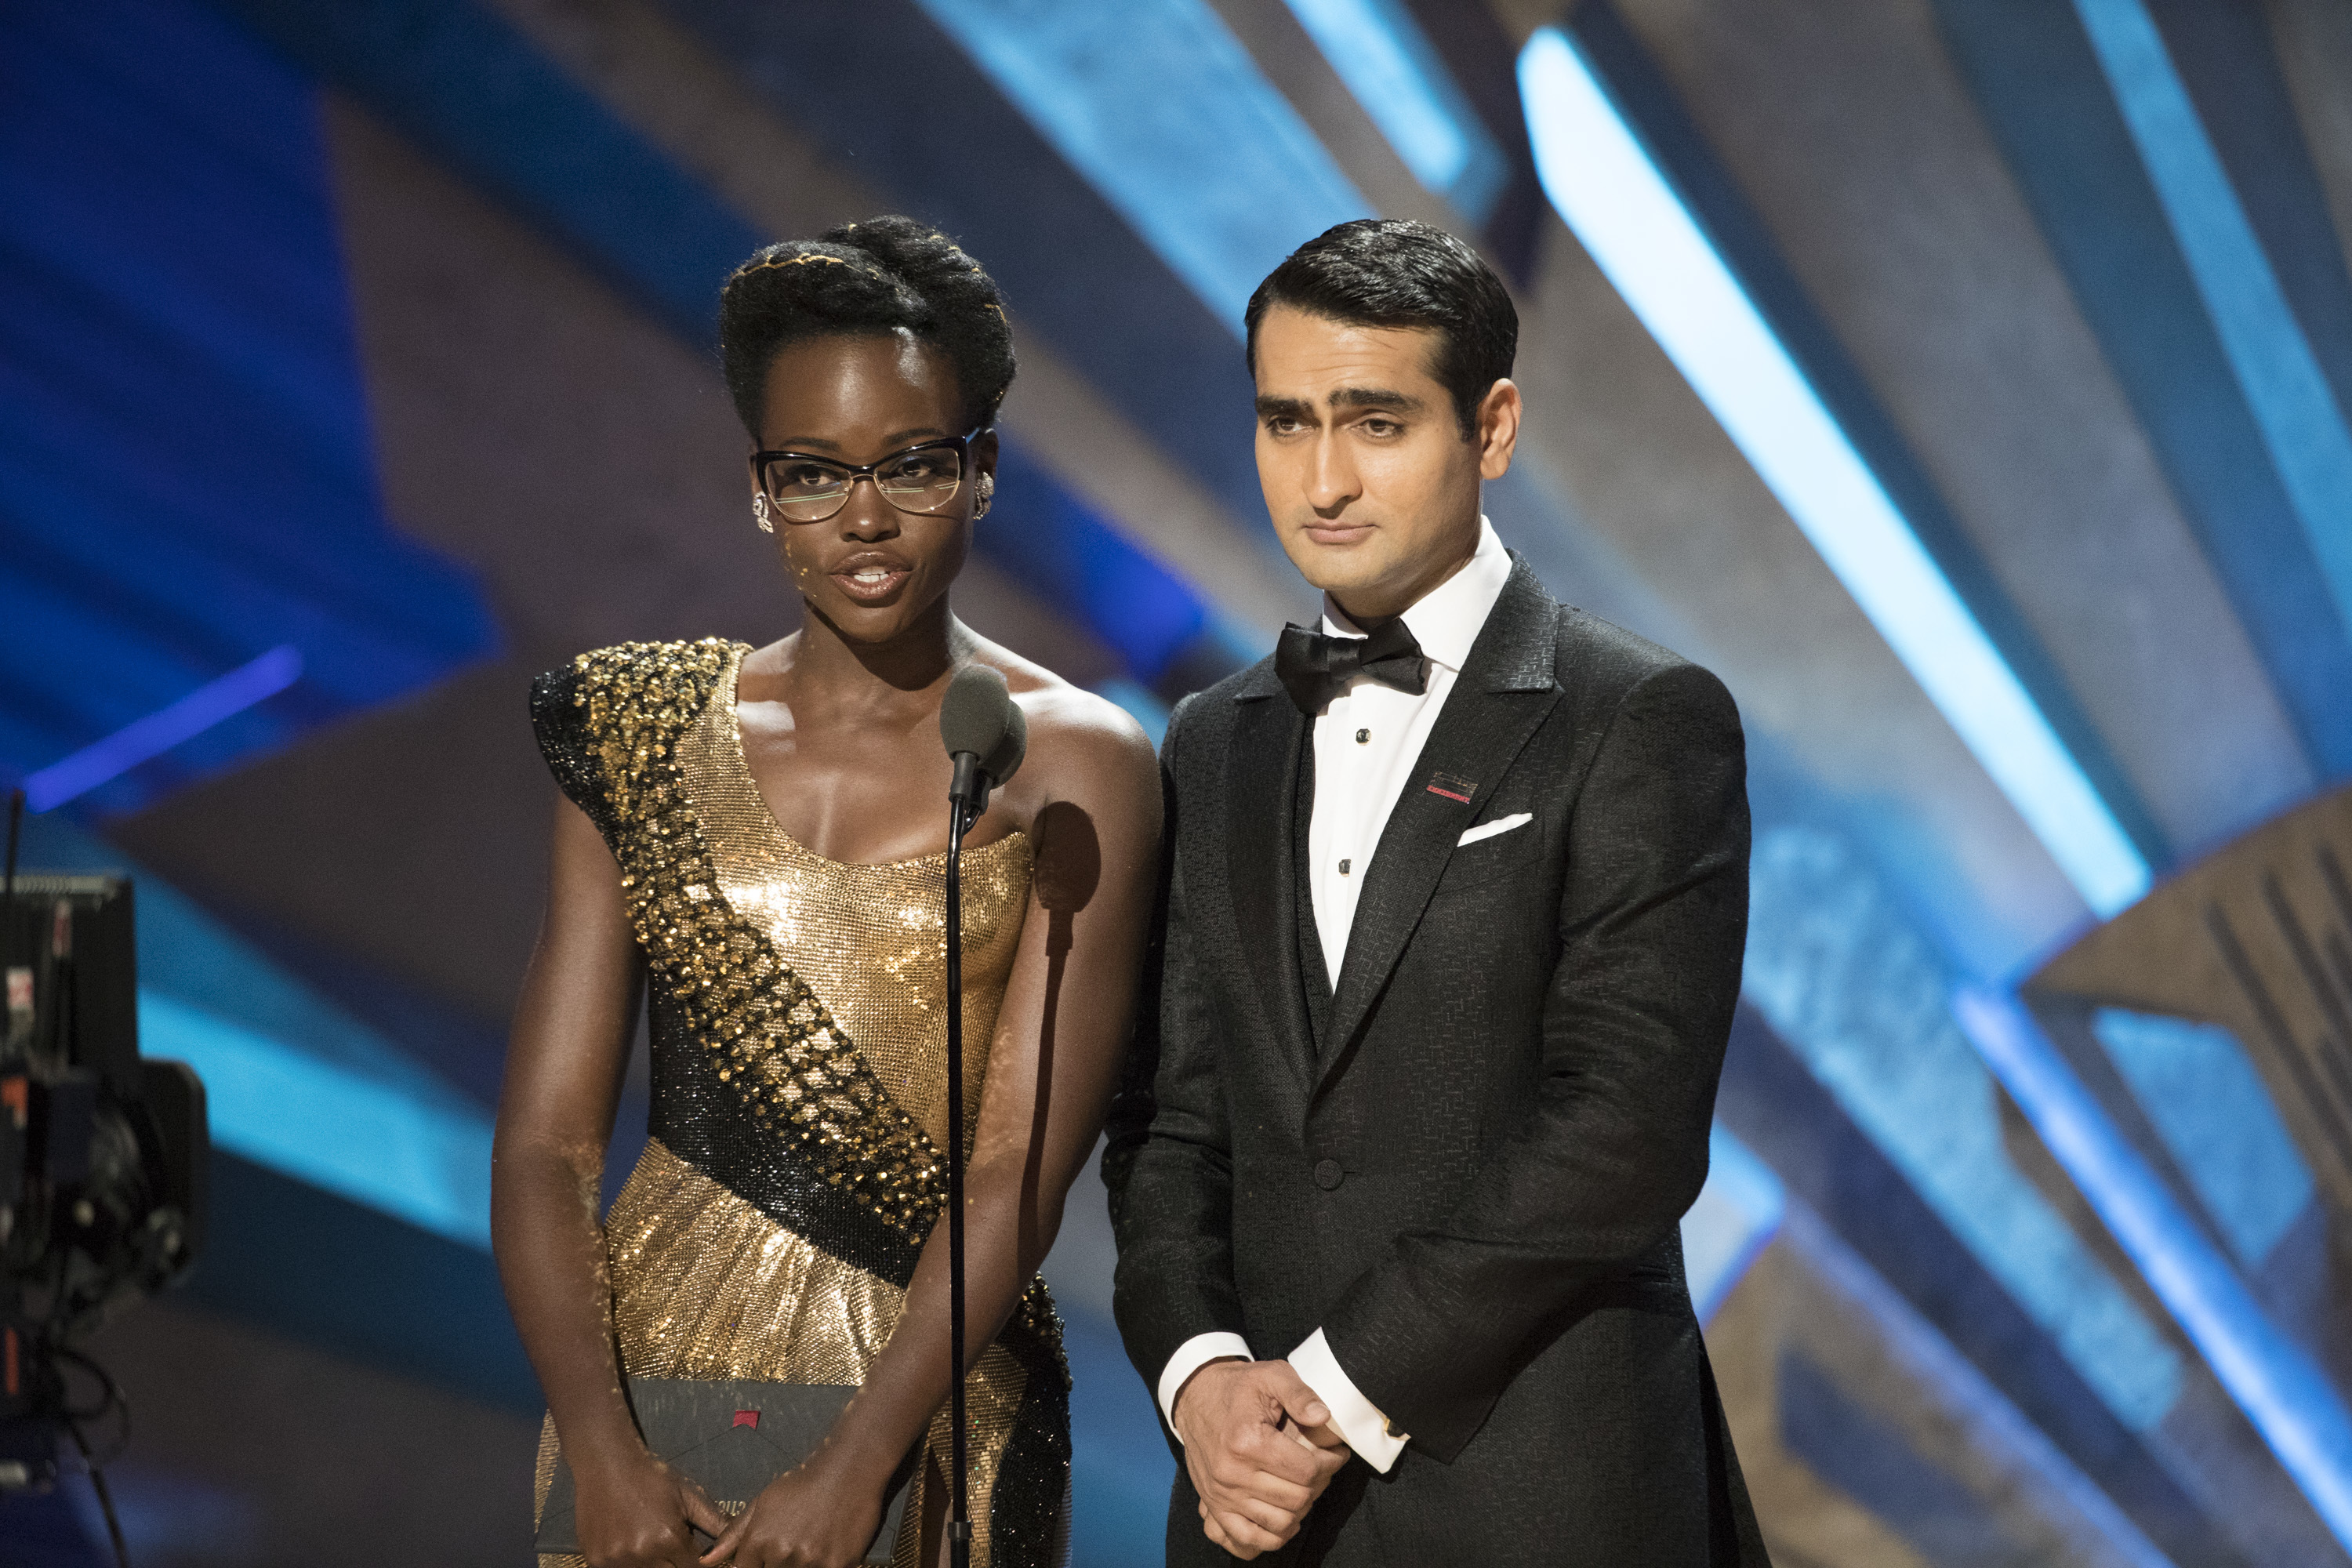 Lupita Nyong'o and Kumail Nanjiani give a speech supporting DREAMers at the Oscars.